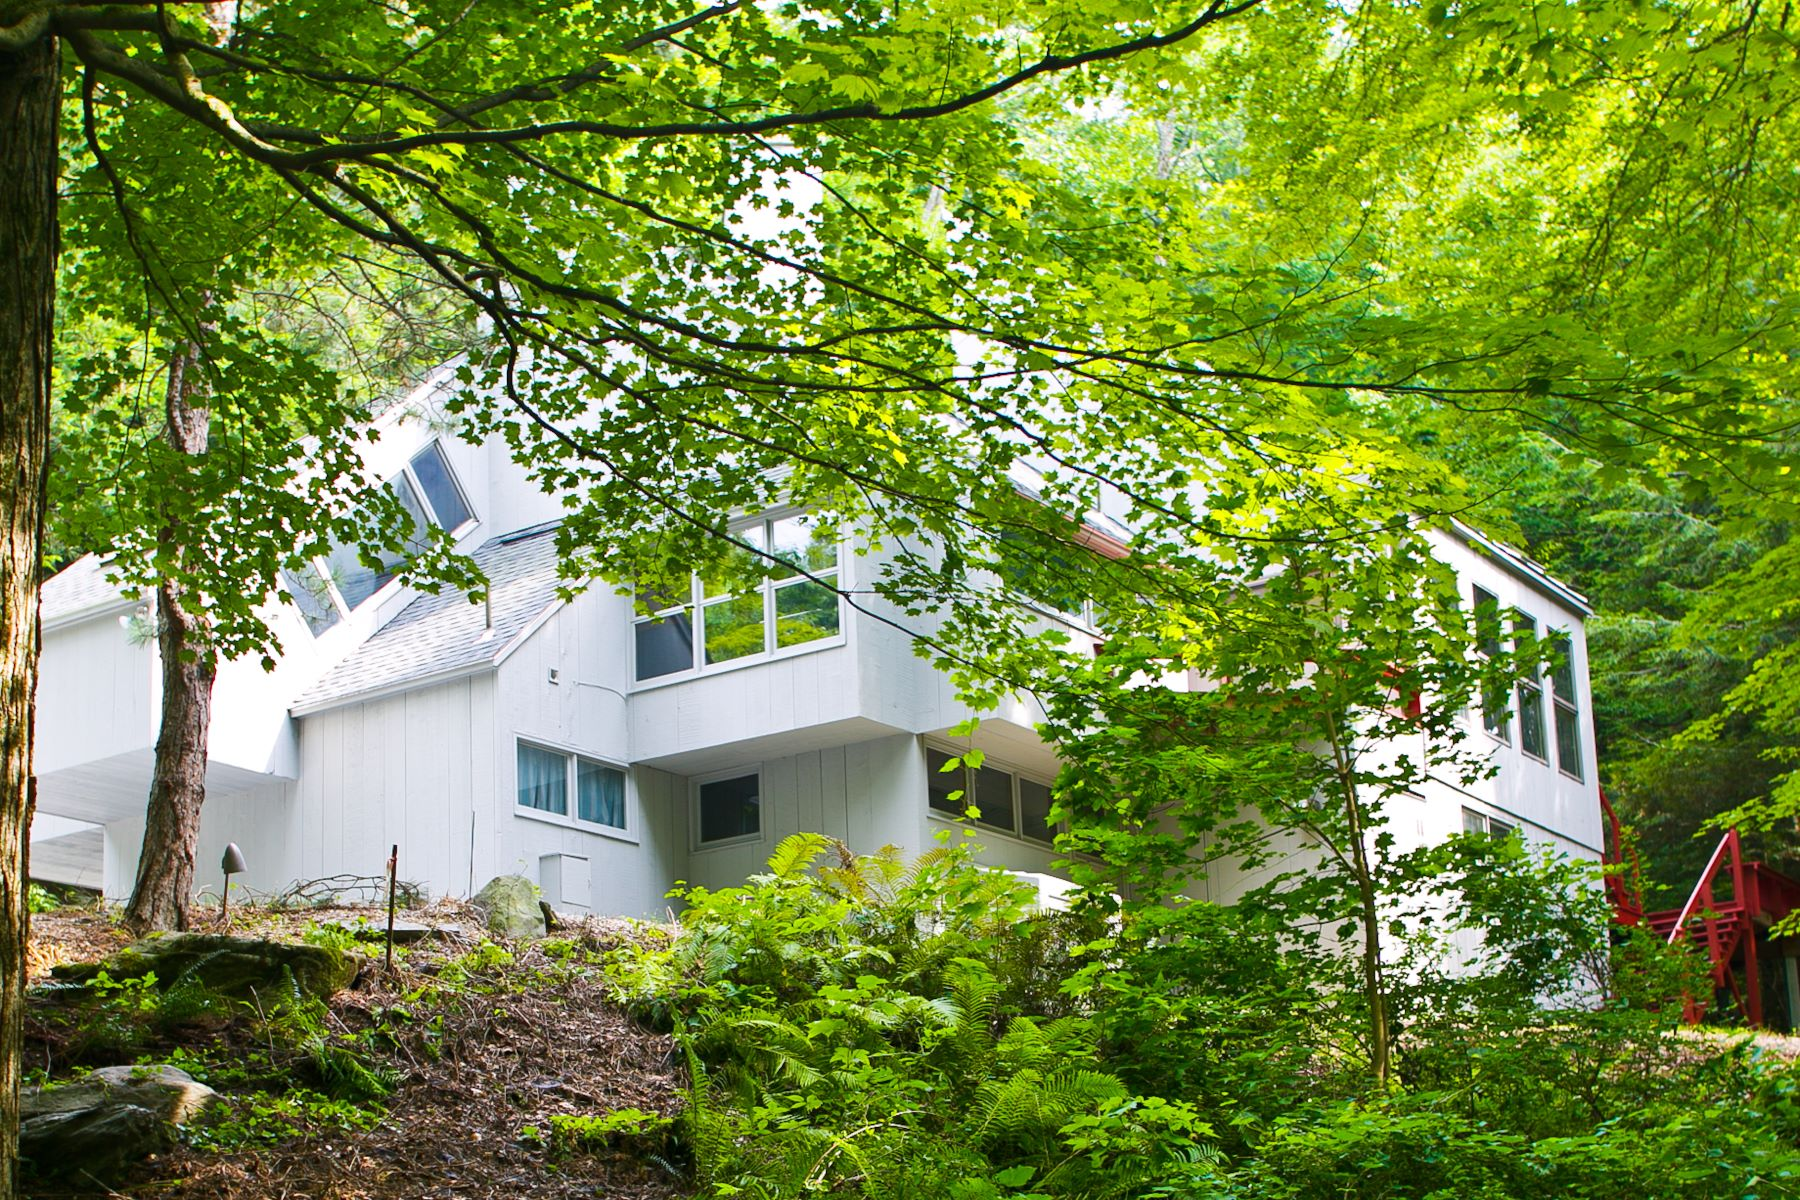 Single Family Home for Active at A Striking Modern Home Minutes From Tanglewood and Kripalu 1339 Lenox Rd Richmond, Massachusetts 01254 United States